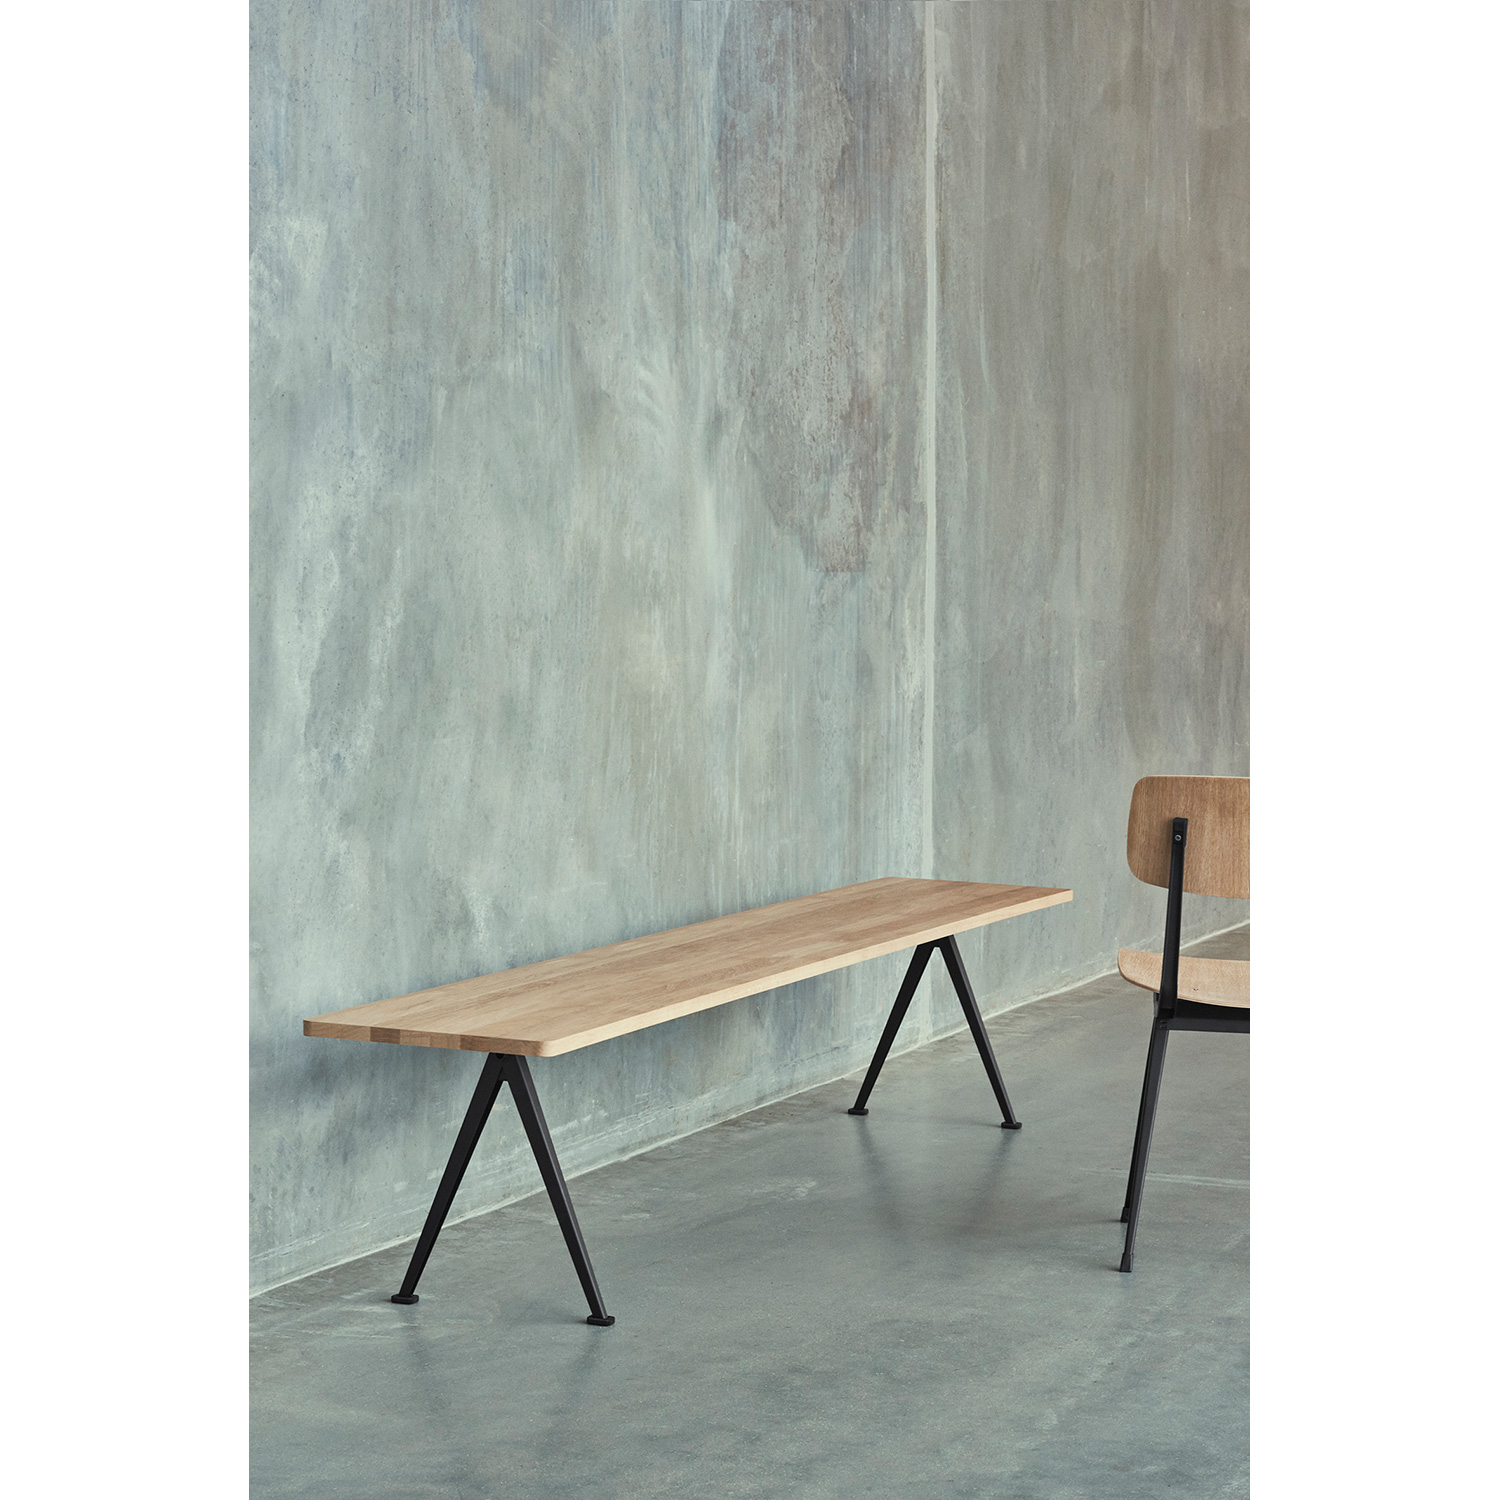 Pyramid bench 11 200x40, black frame/smoked